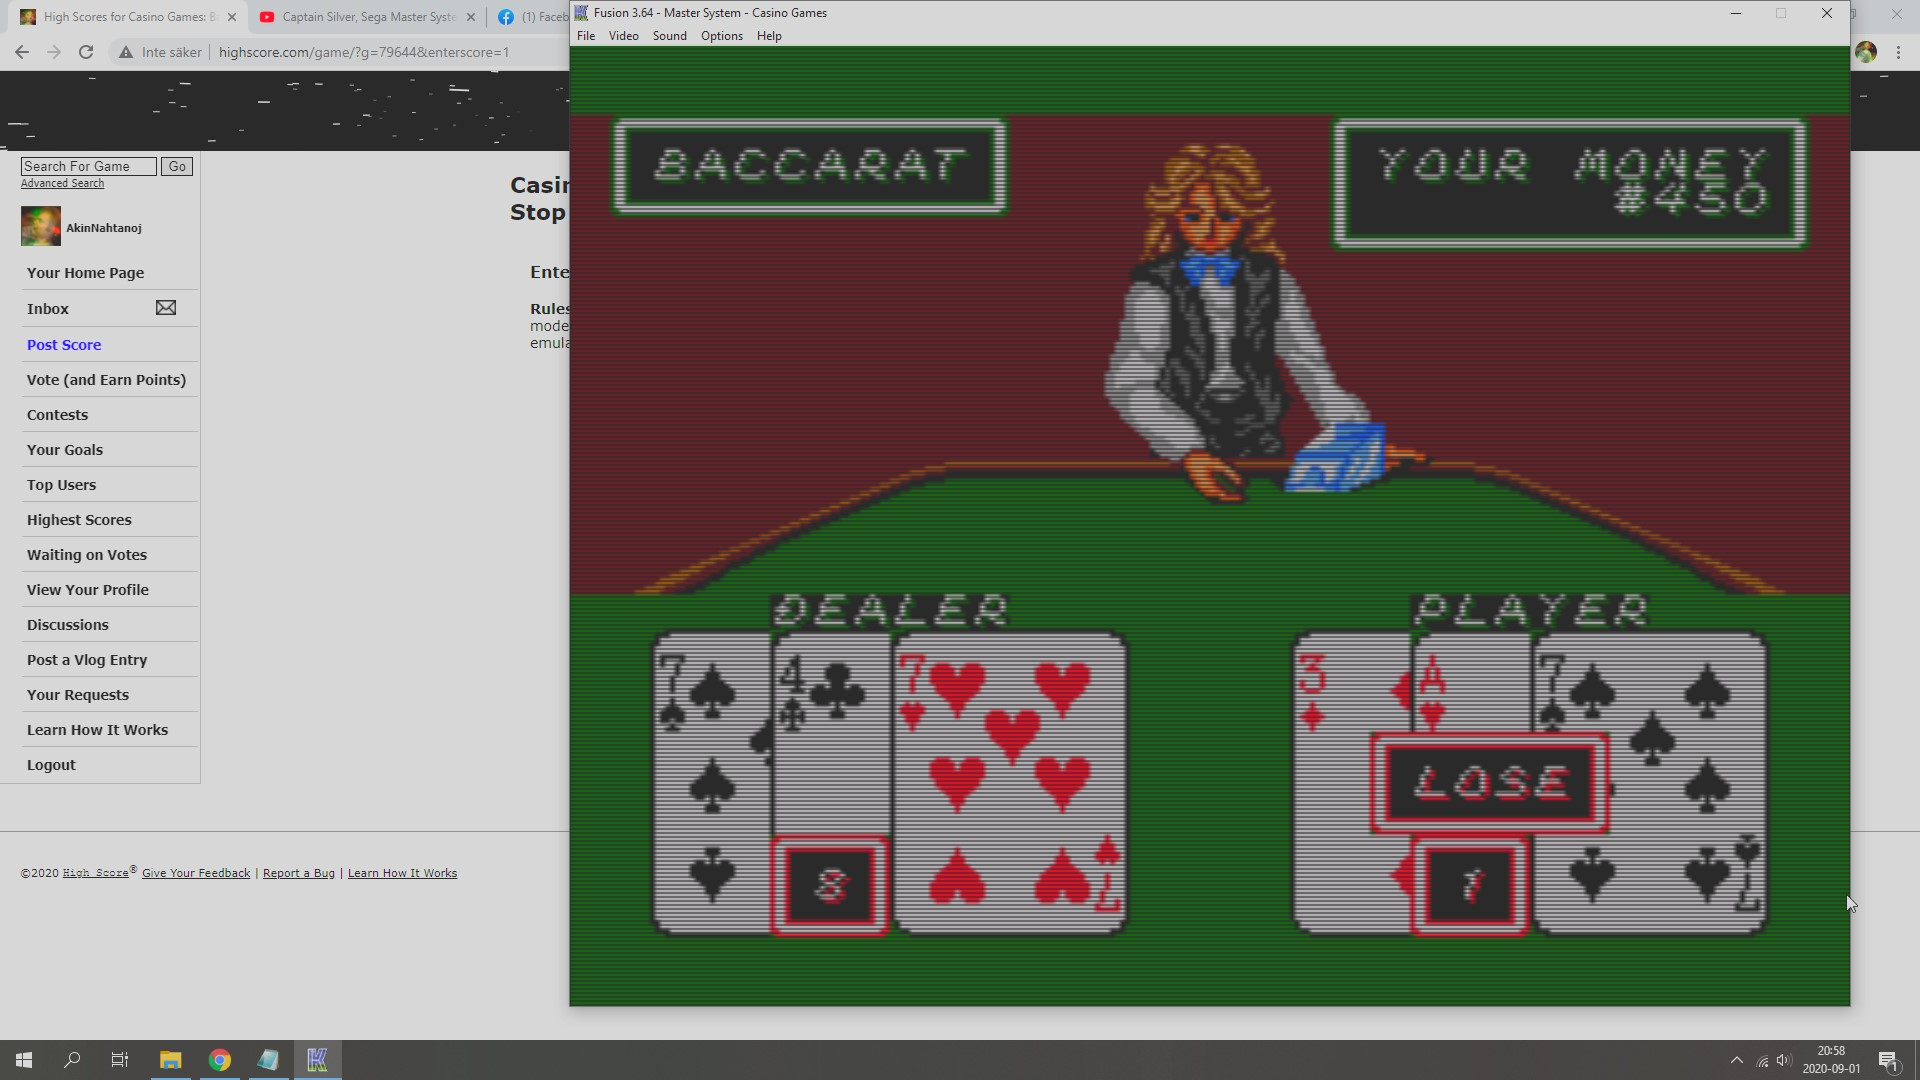 Casino Games: Baccarat [Dollars Whenever You Stop Playing] 450 points